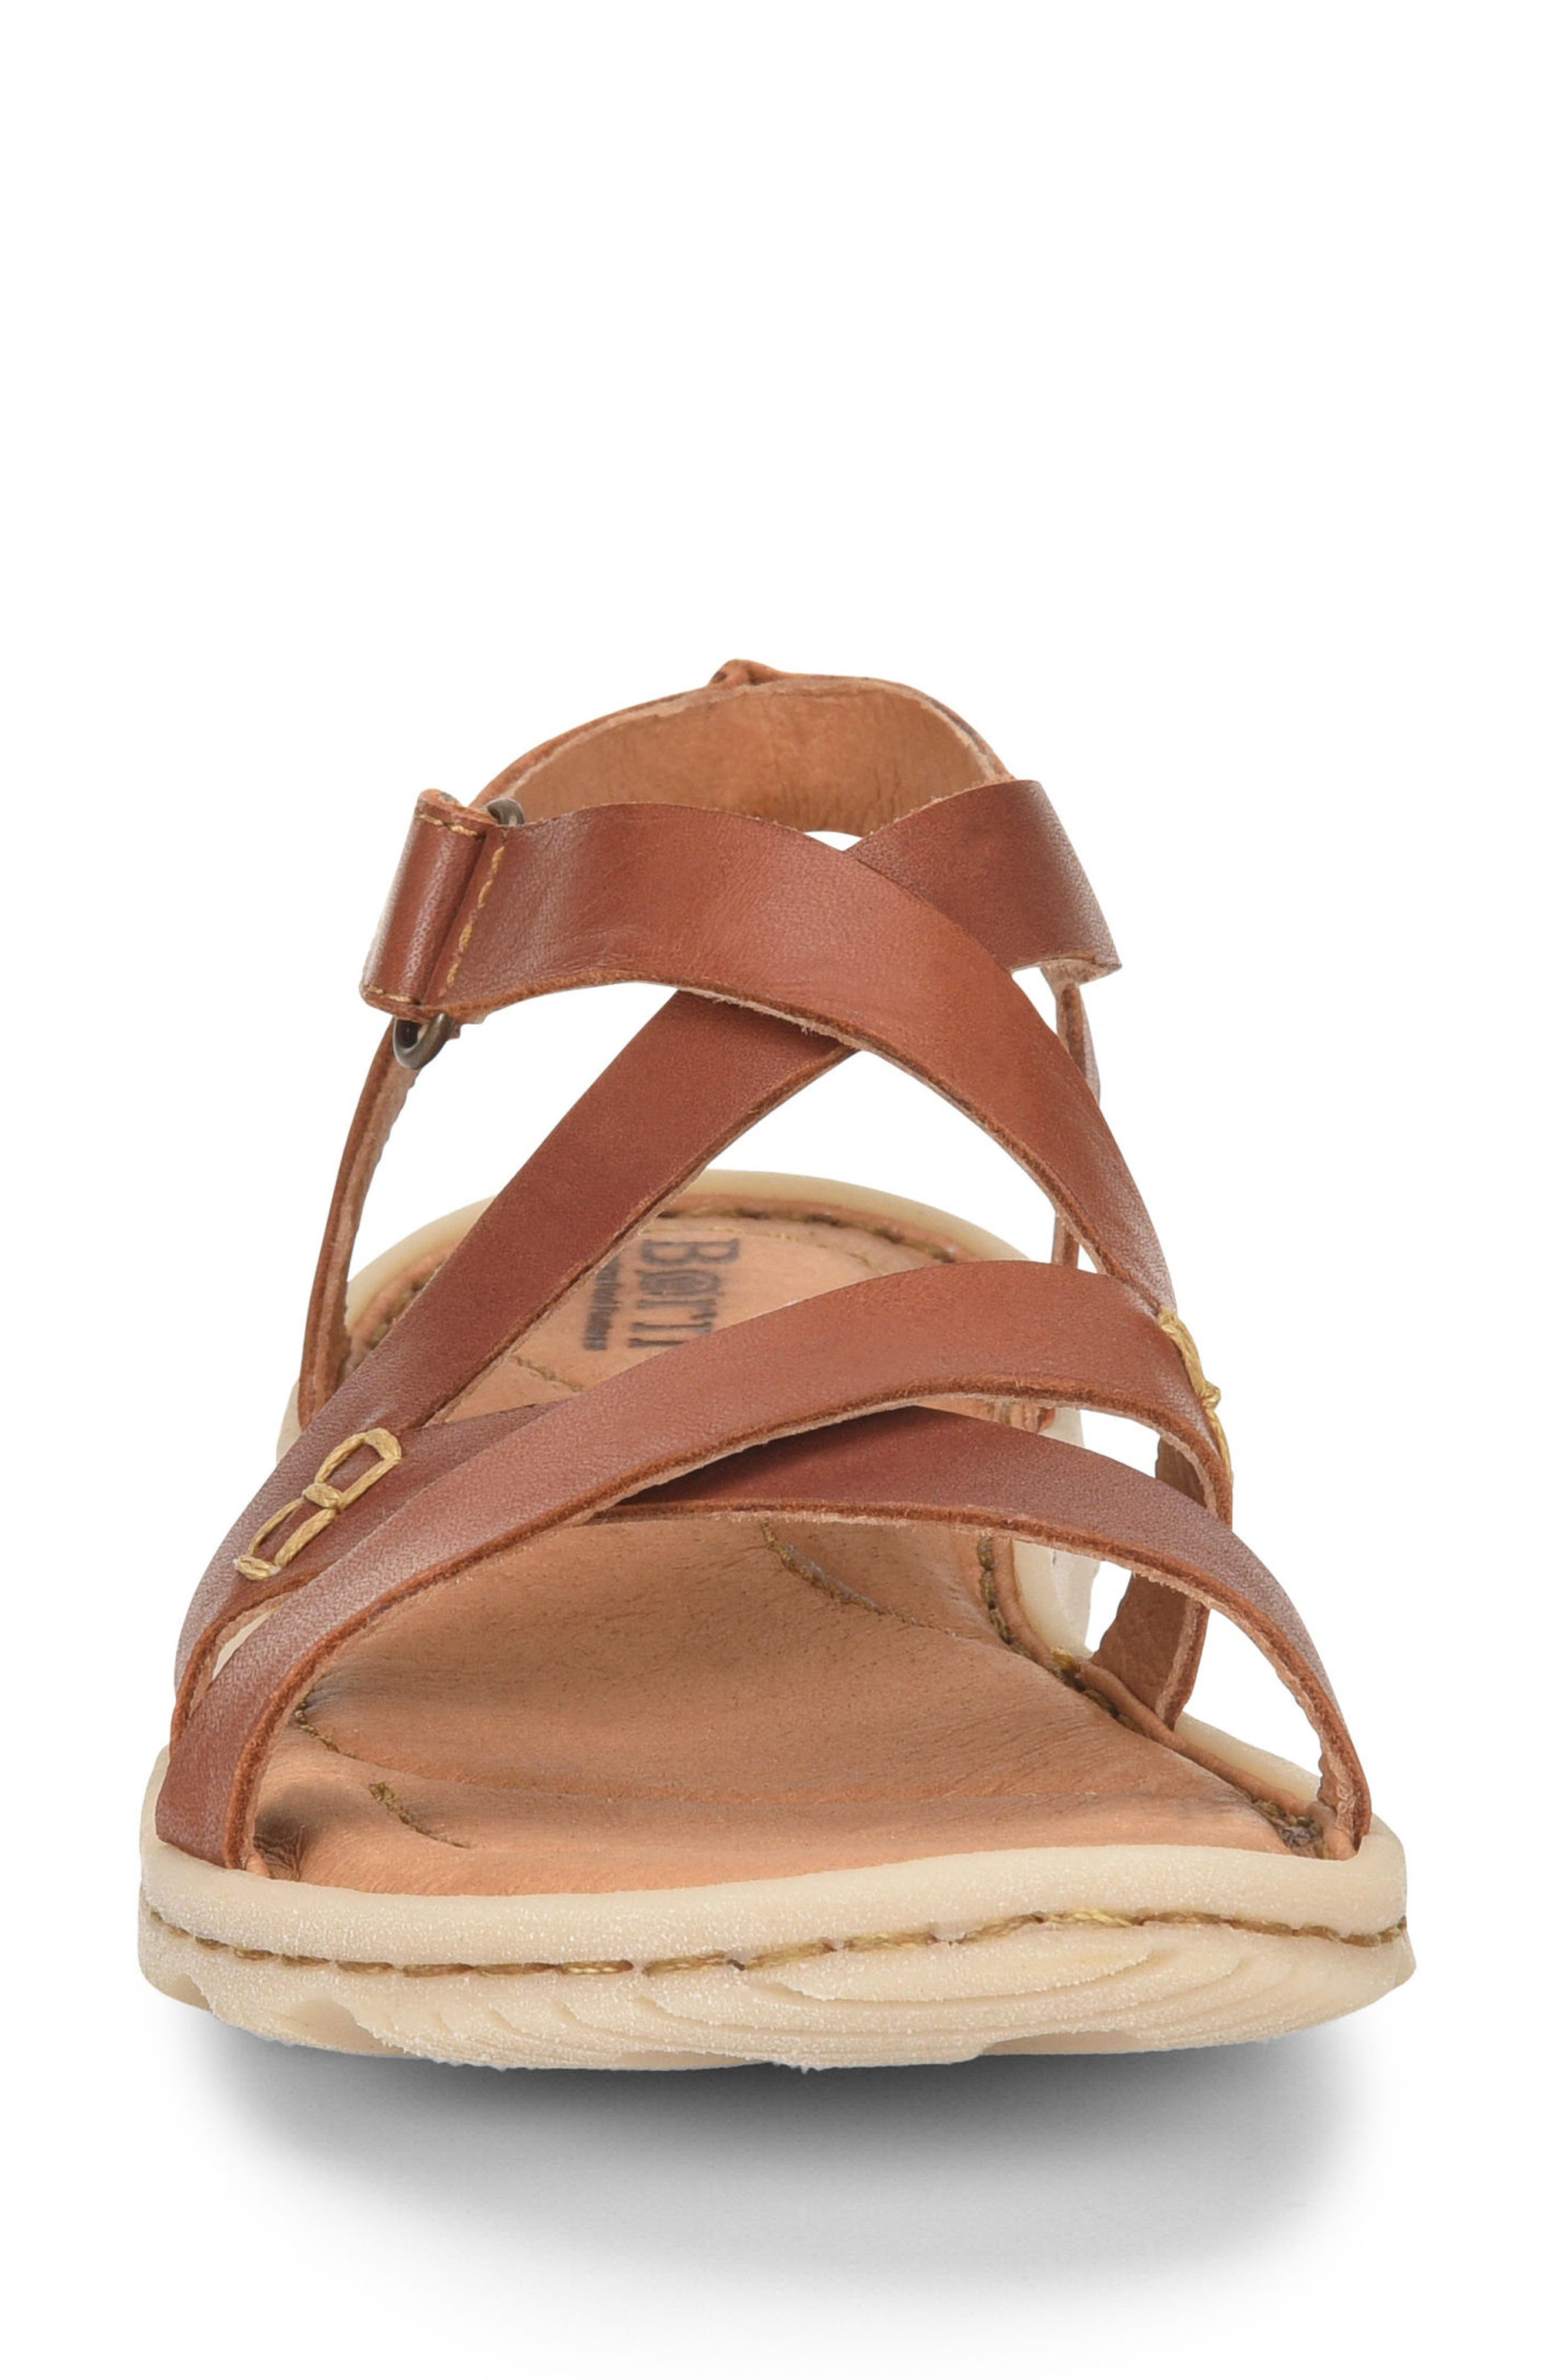 Trinidad Sandal,                             Alternate thumbnail 4, color,                             Brown Leather